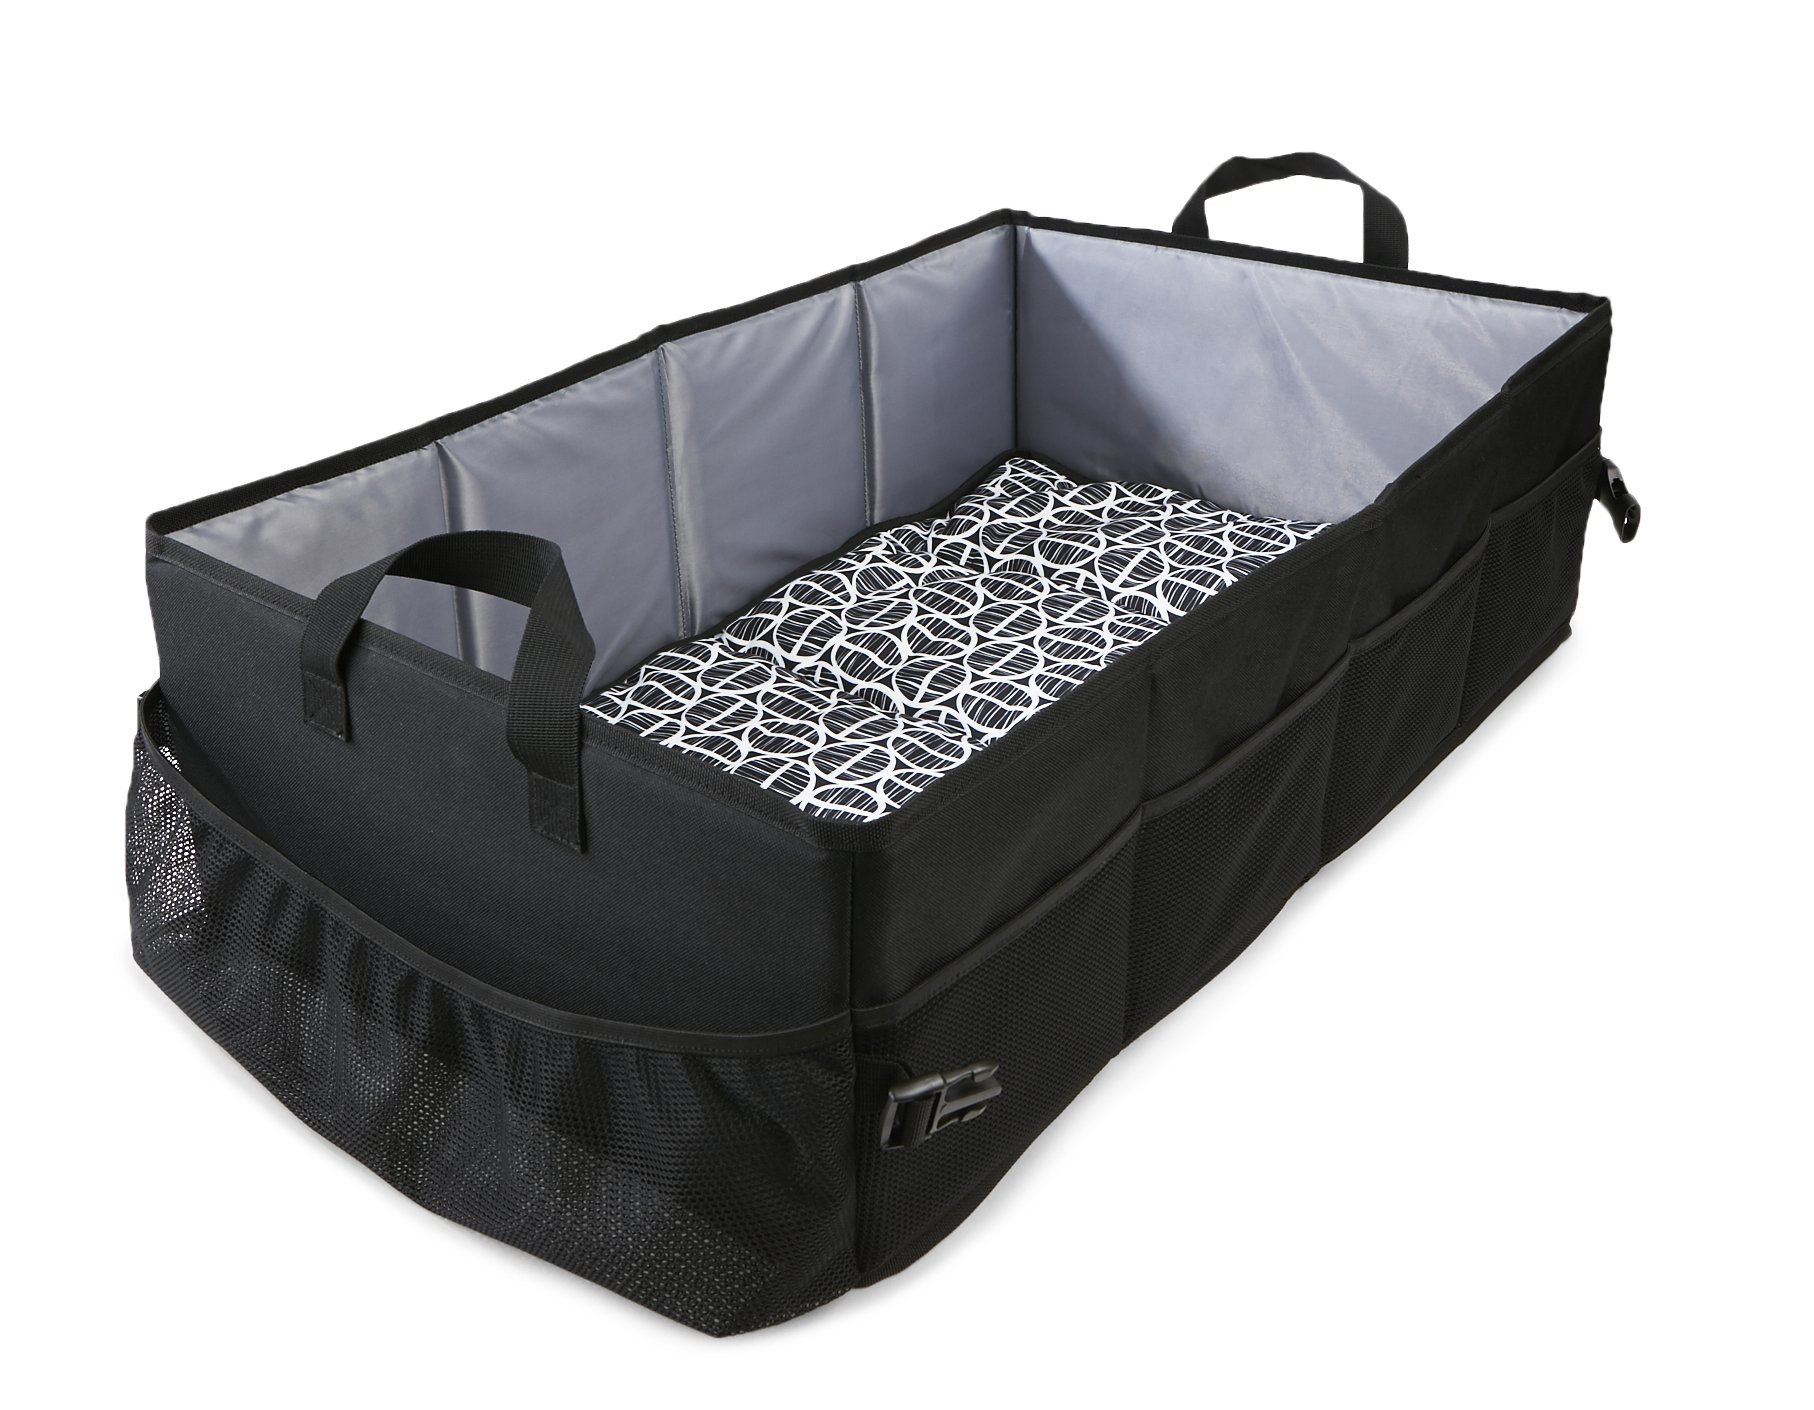 Reste Kids & Baby Travel Bed - Sized for Toddlers, Infants, and Kids - Youth Travel Size Bed is Foldable and Portable and Includes Carrying Bag, Black and Grey